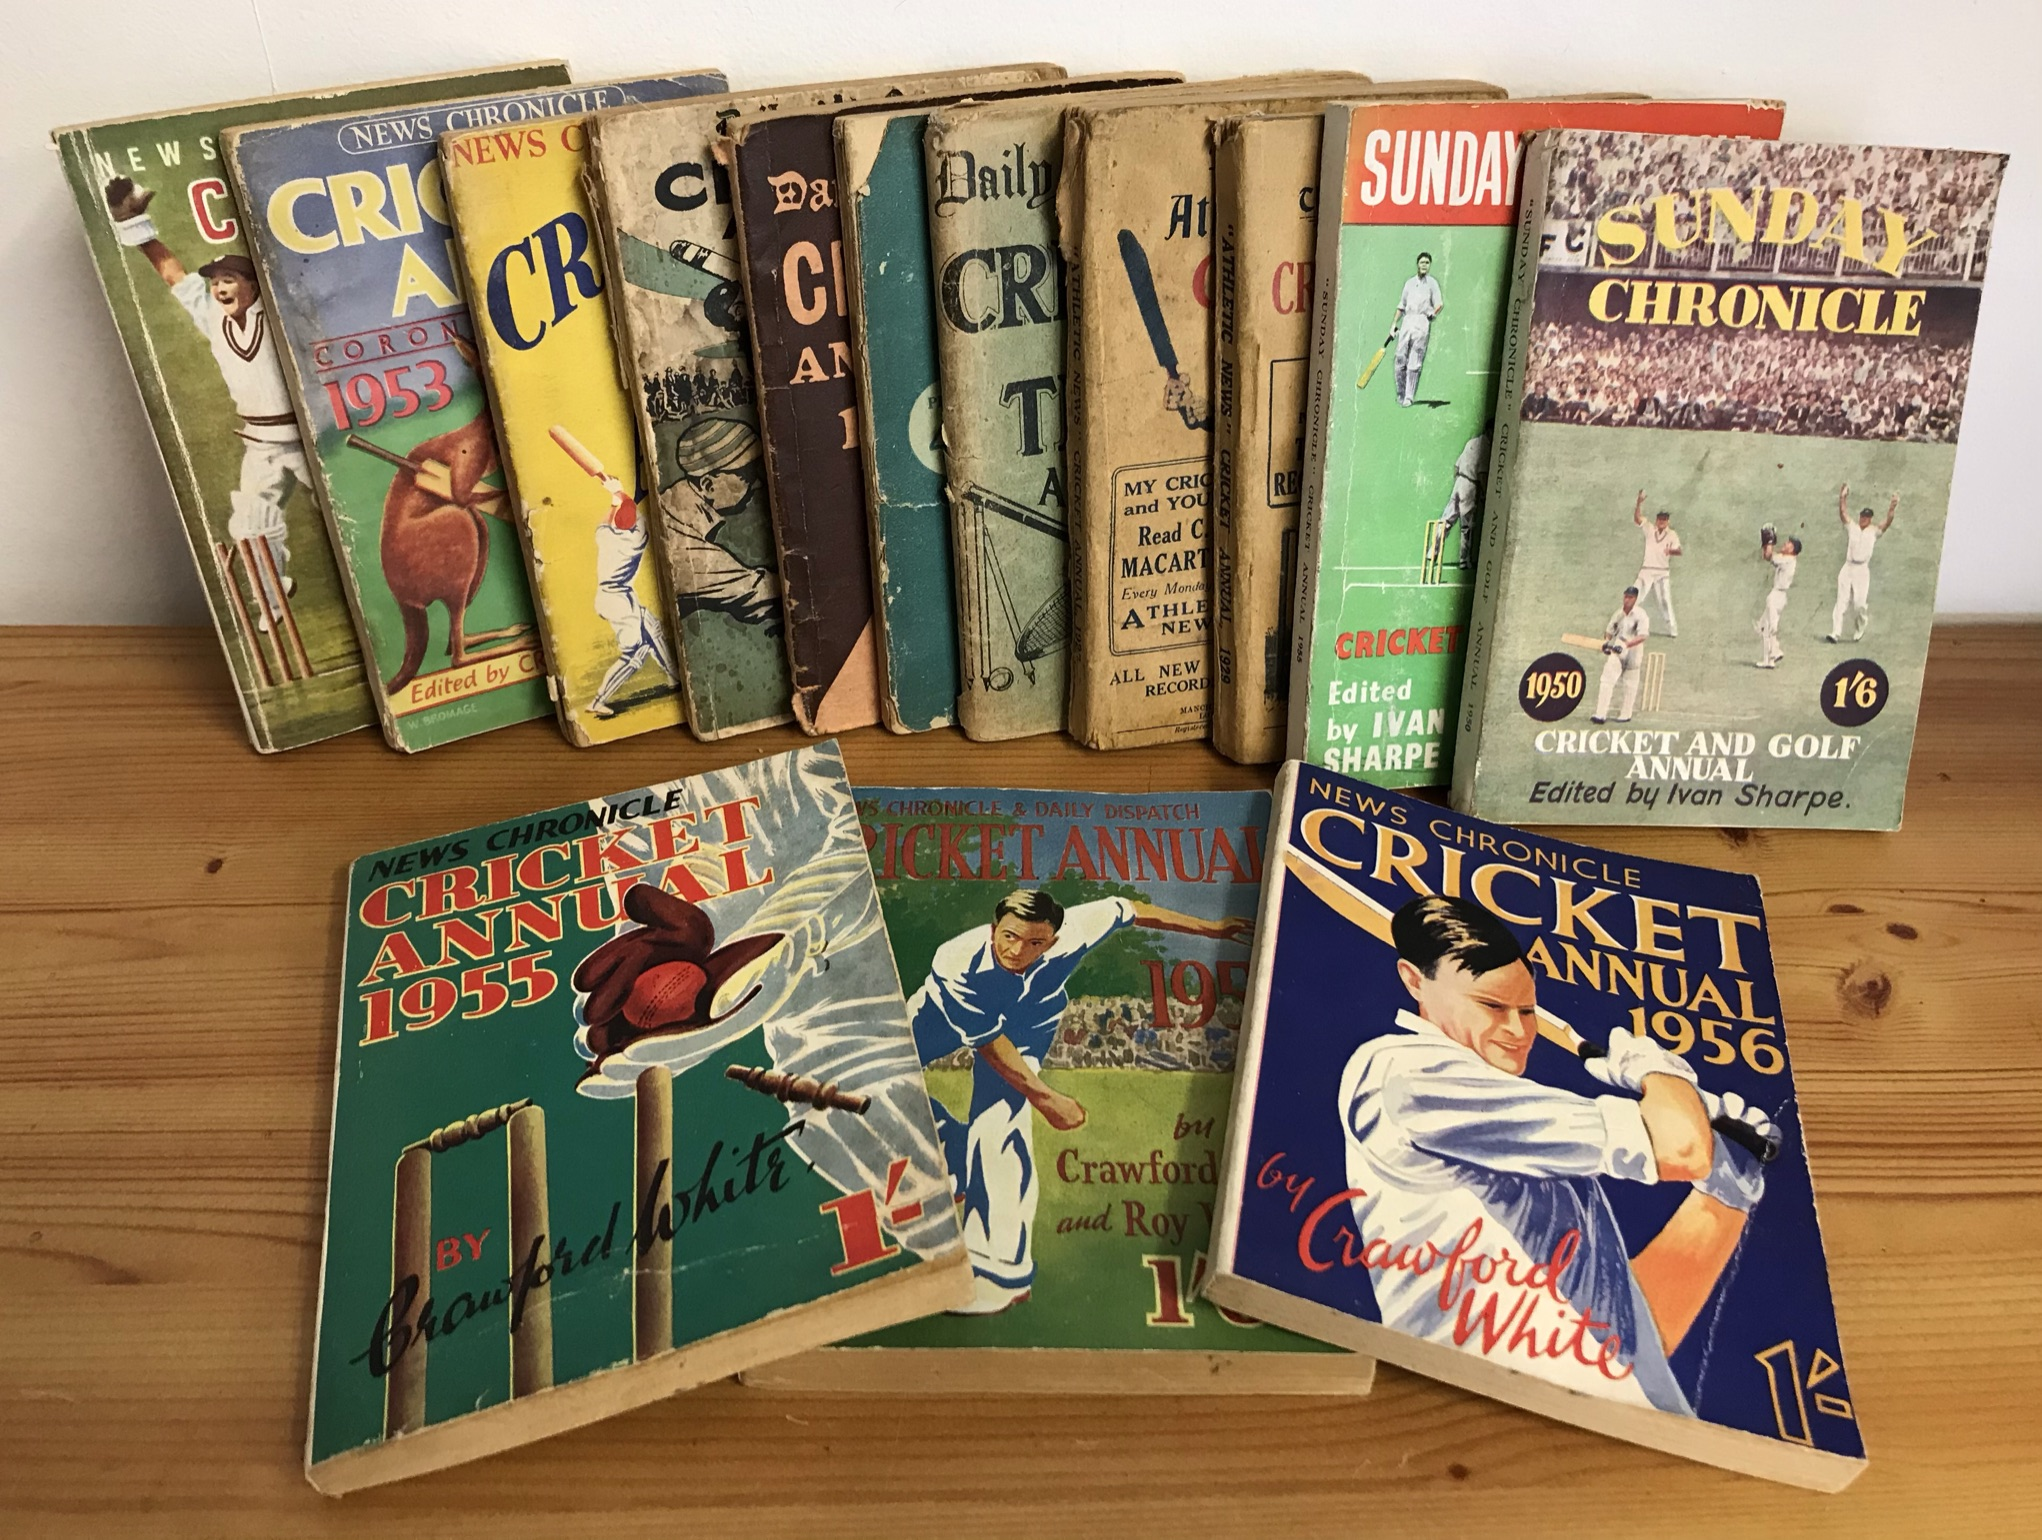 Cricket Annuals including New Chronicle Cricket Annuals 1950s (6), Sunday Chronicle Cricket